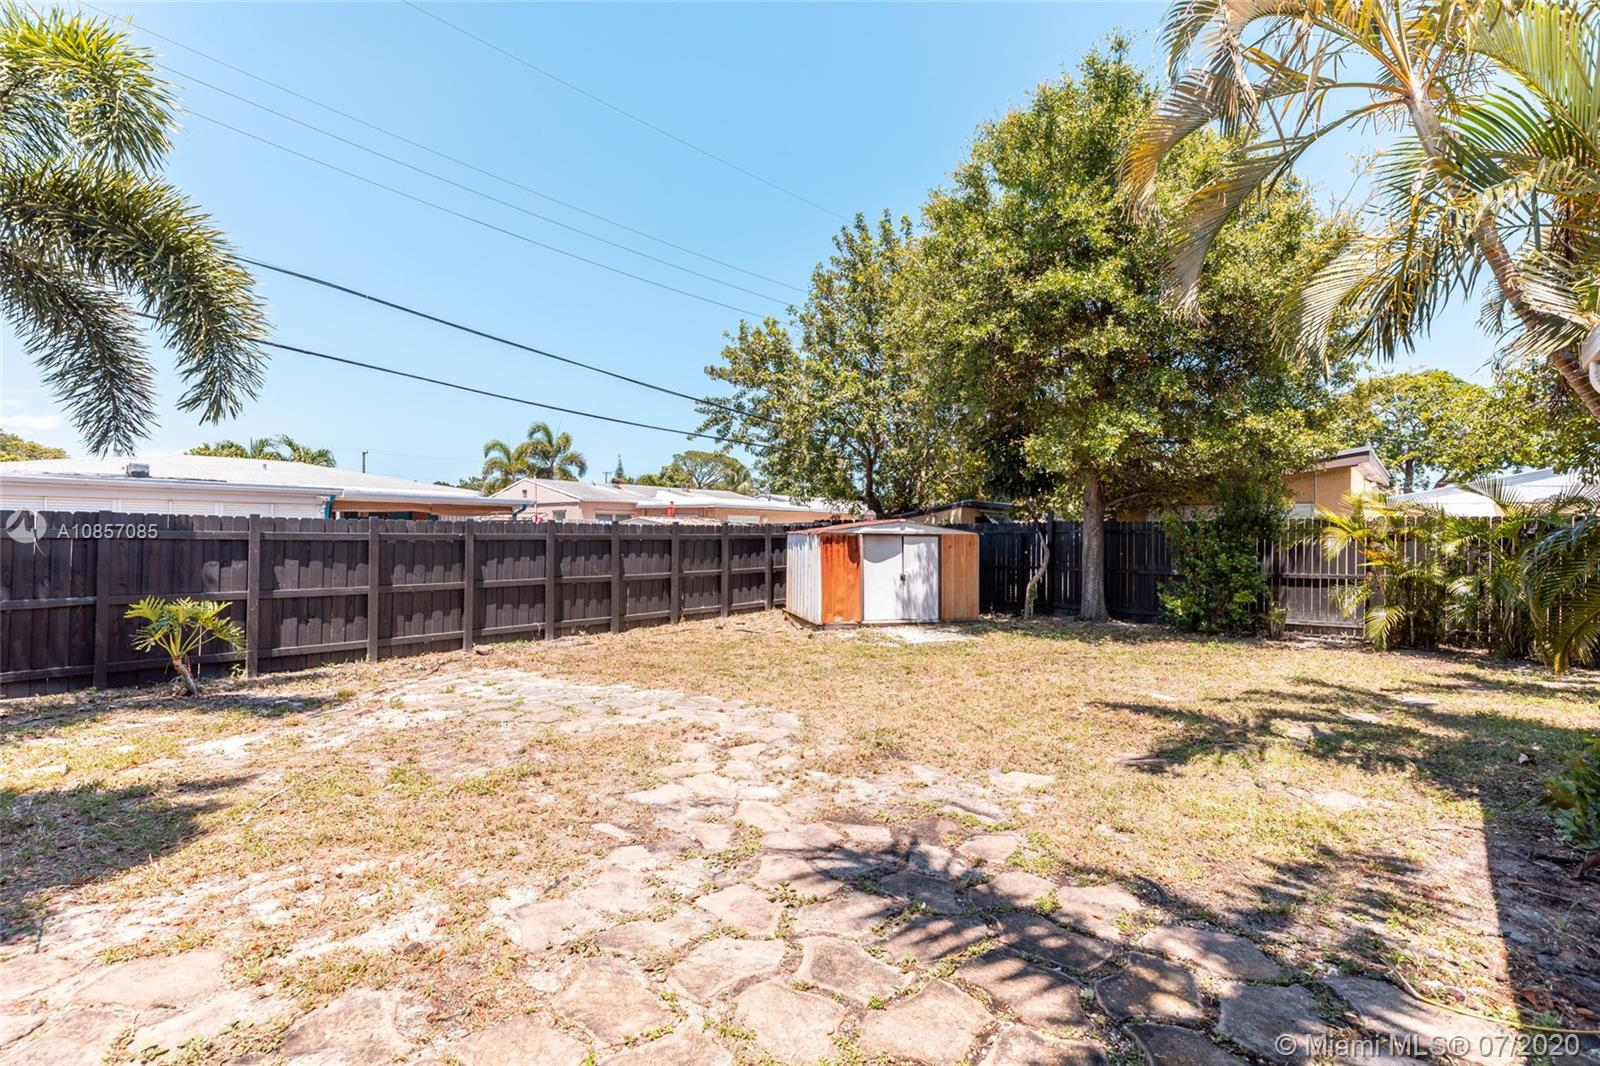 Recently remodeled 2B and 1B home in Oakland Park. Super clean and freshly painted (inside/outside). Brand new stainless steel appliances, granite countertops, and white cabinets. Great family room, and a huge patio with room for a pool. This is a must-see.